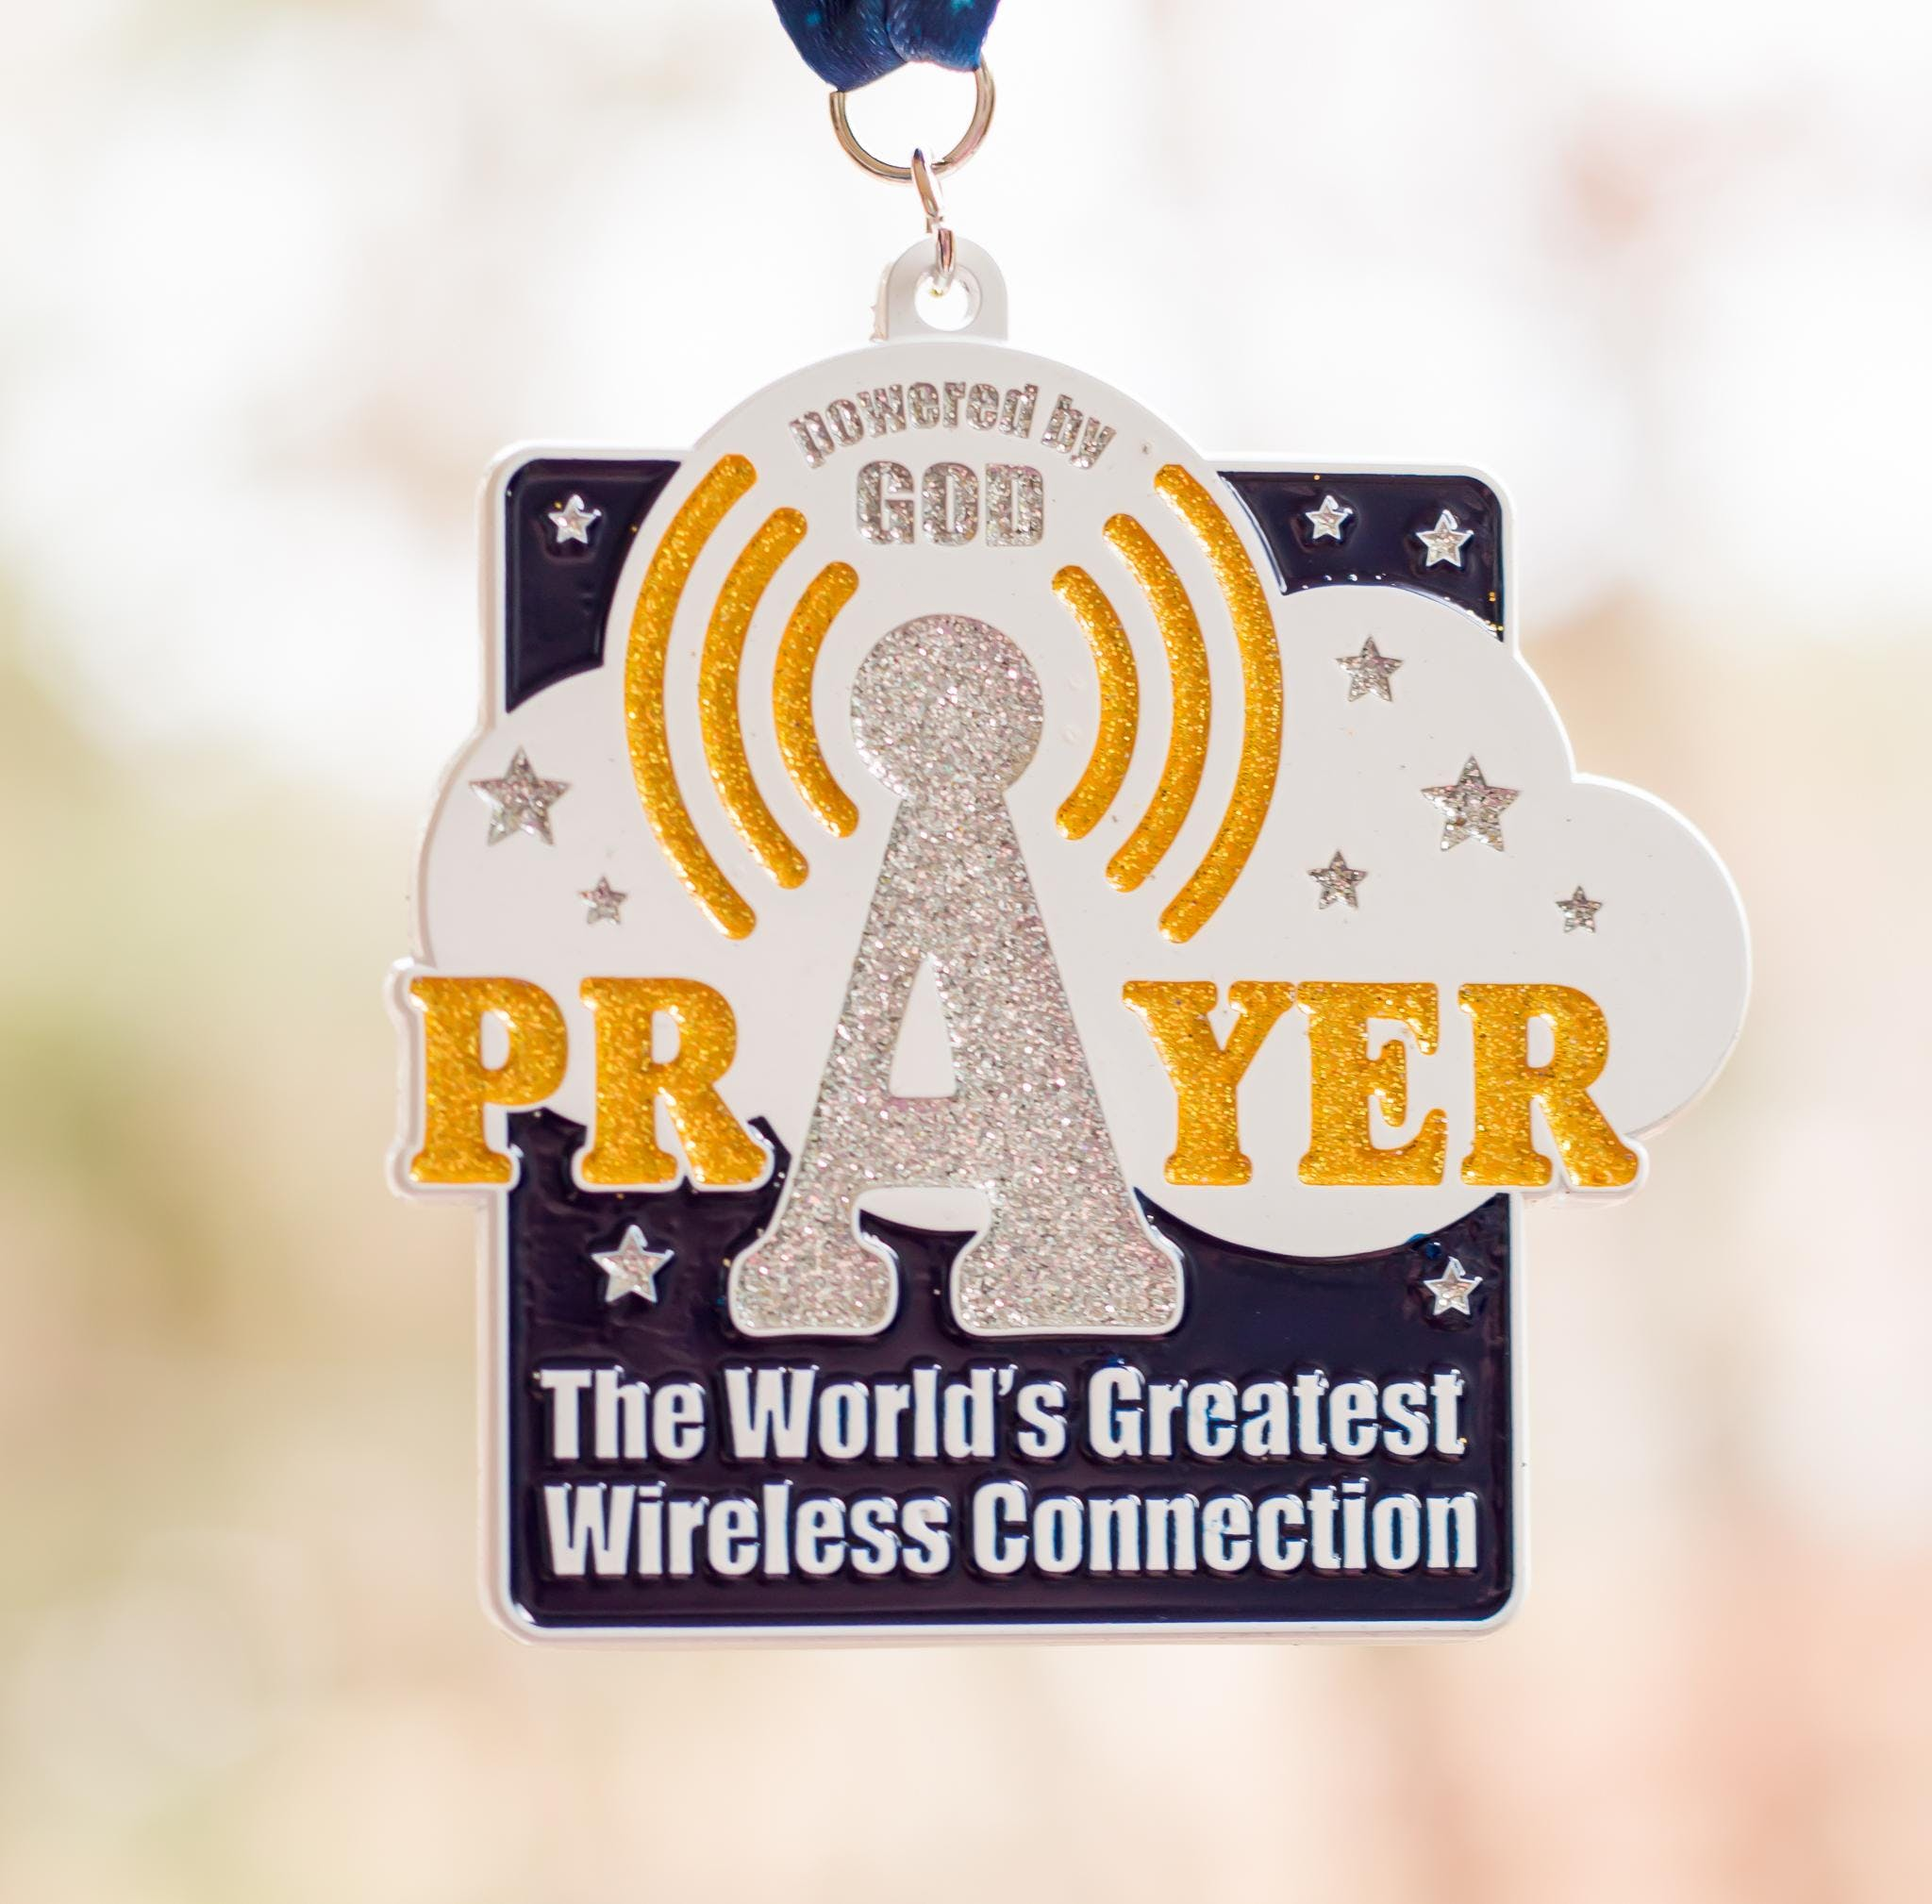 2019 PRAYER: The World's Greatest Wireless Connection 1 Mile, 5K, 10K, 13.1, 26.2 - New York